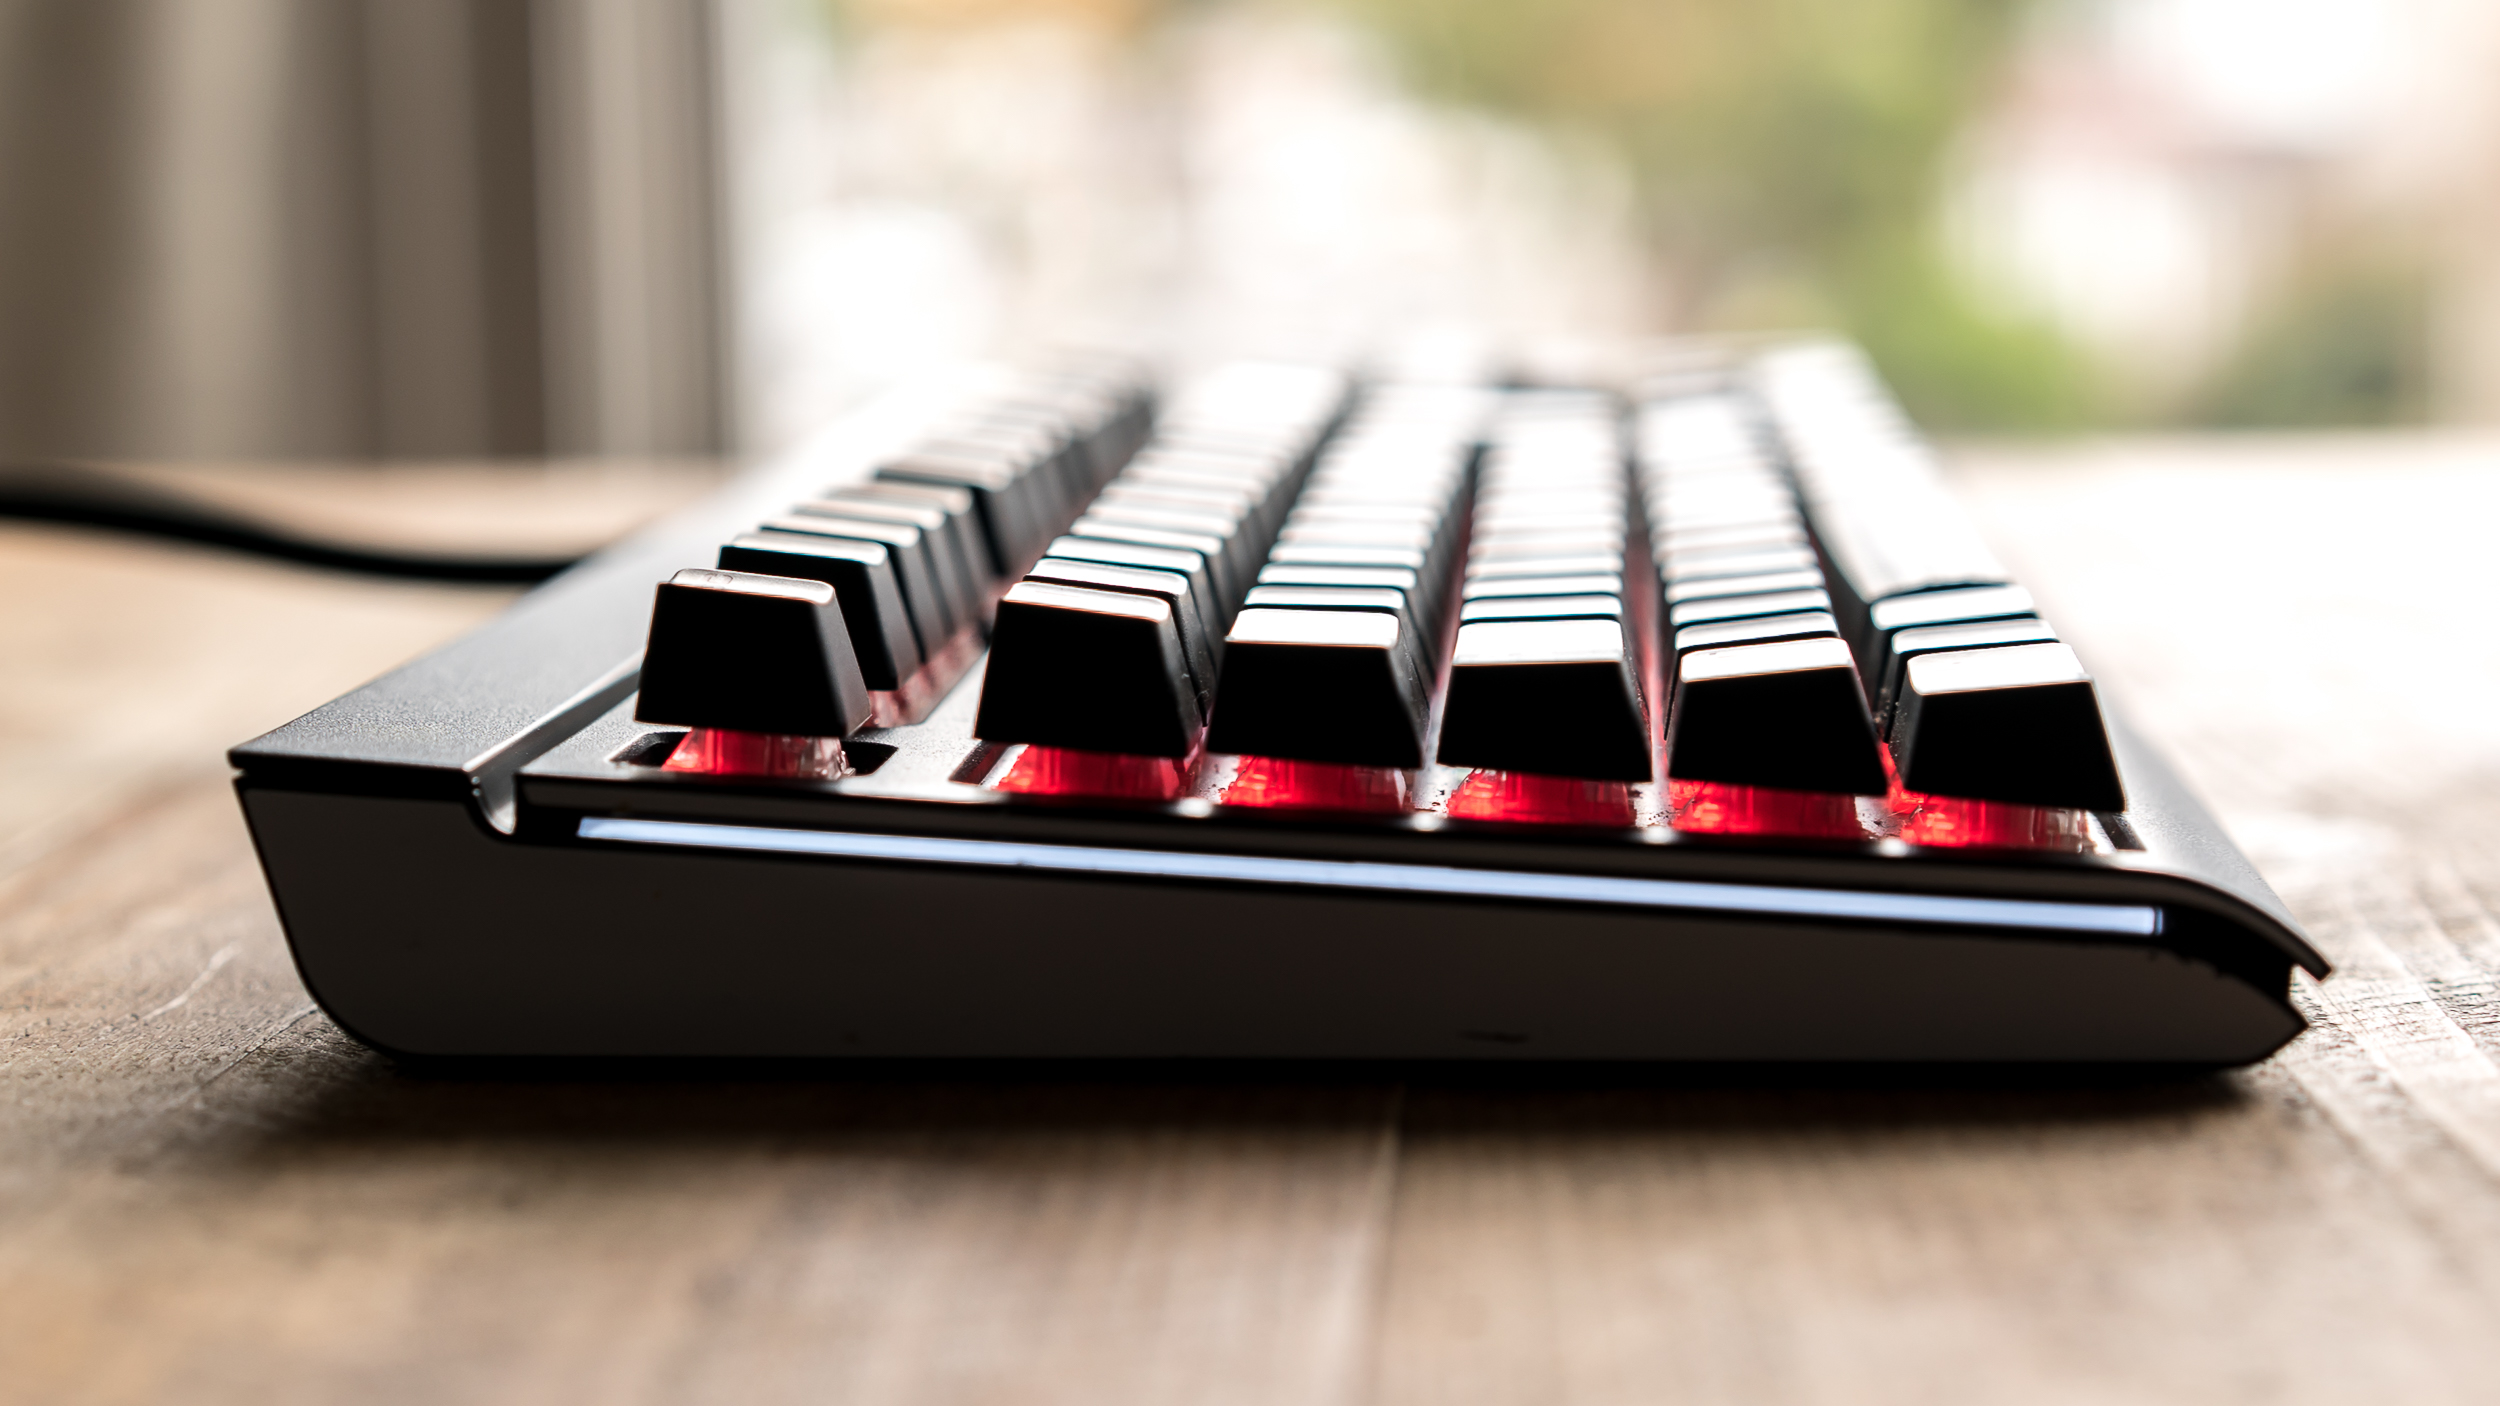 Corsair Mx Silent Mini Review Can A Mechanical Keyboard Really Be Gaming K70 Rgb Red Switch Used Theres Lighting Too For Those That Want The Desktop Bling But Using It Means Braving Corsairs Rough And Confusing Customisation Software